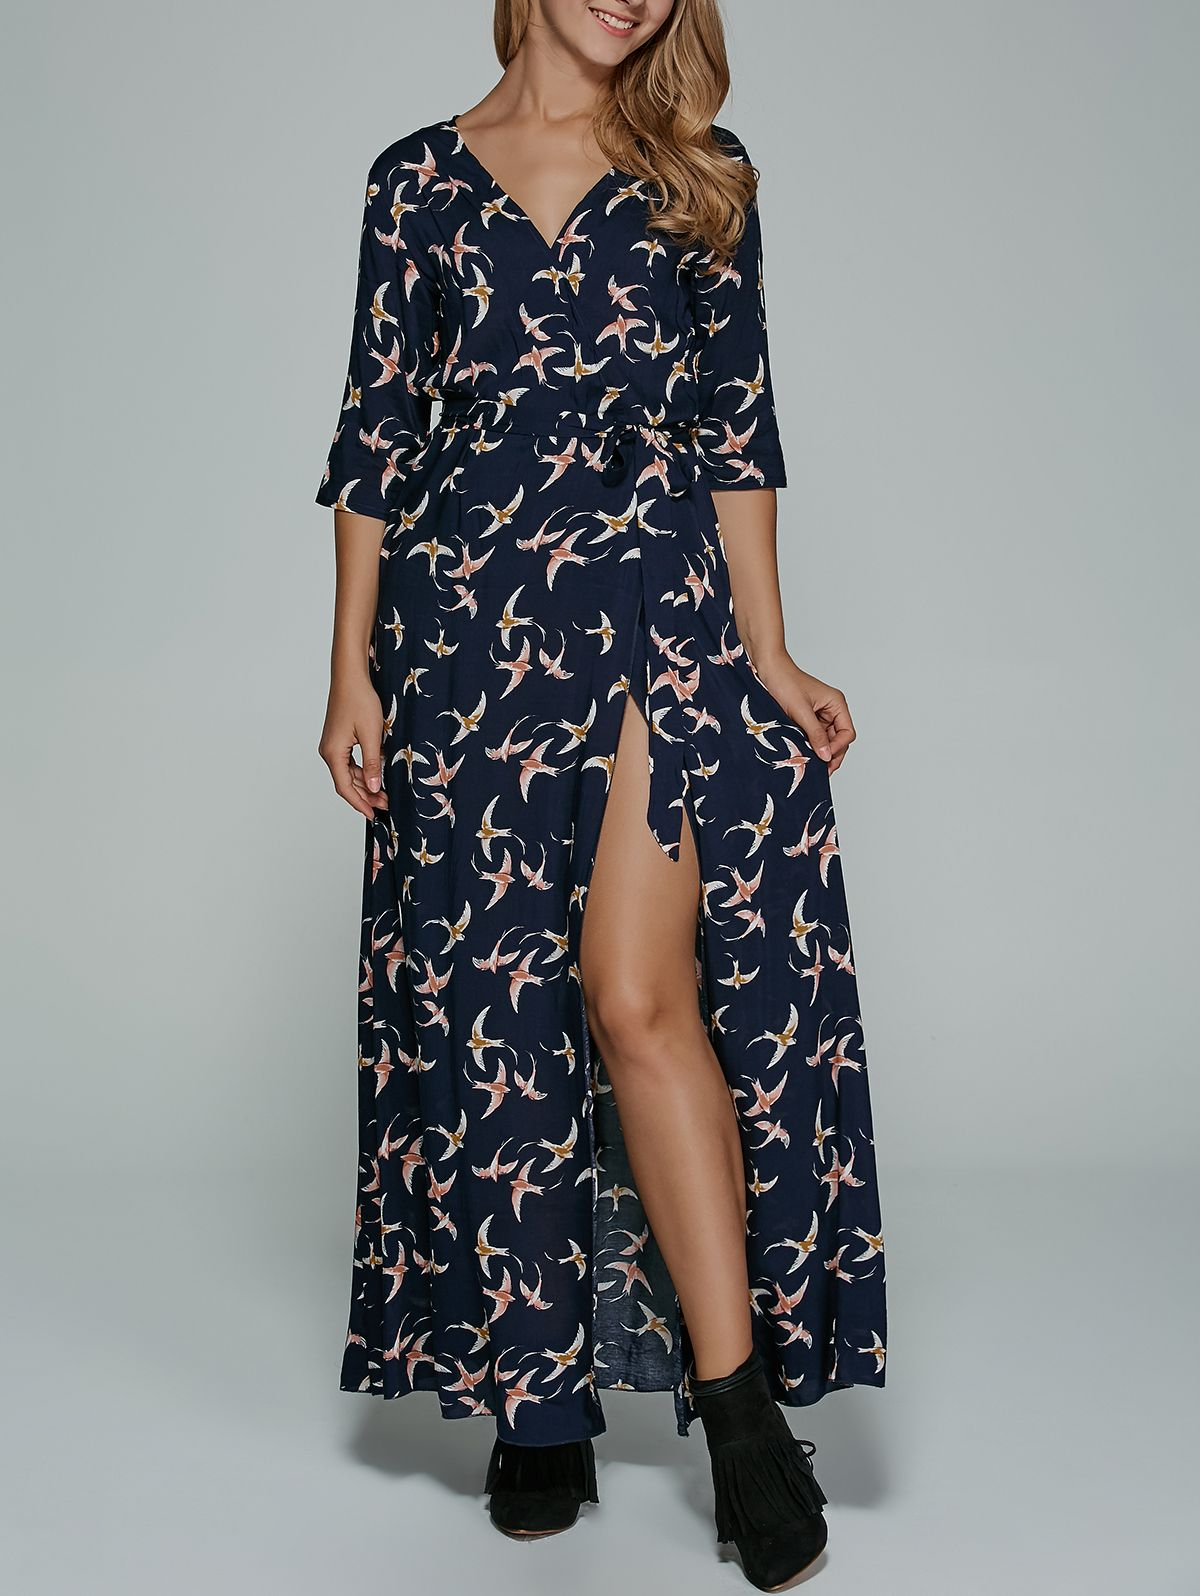 Plunging neck printed wrap maxi dress modern chic and edgy